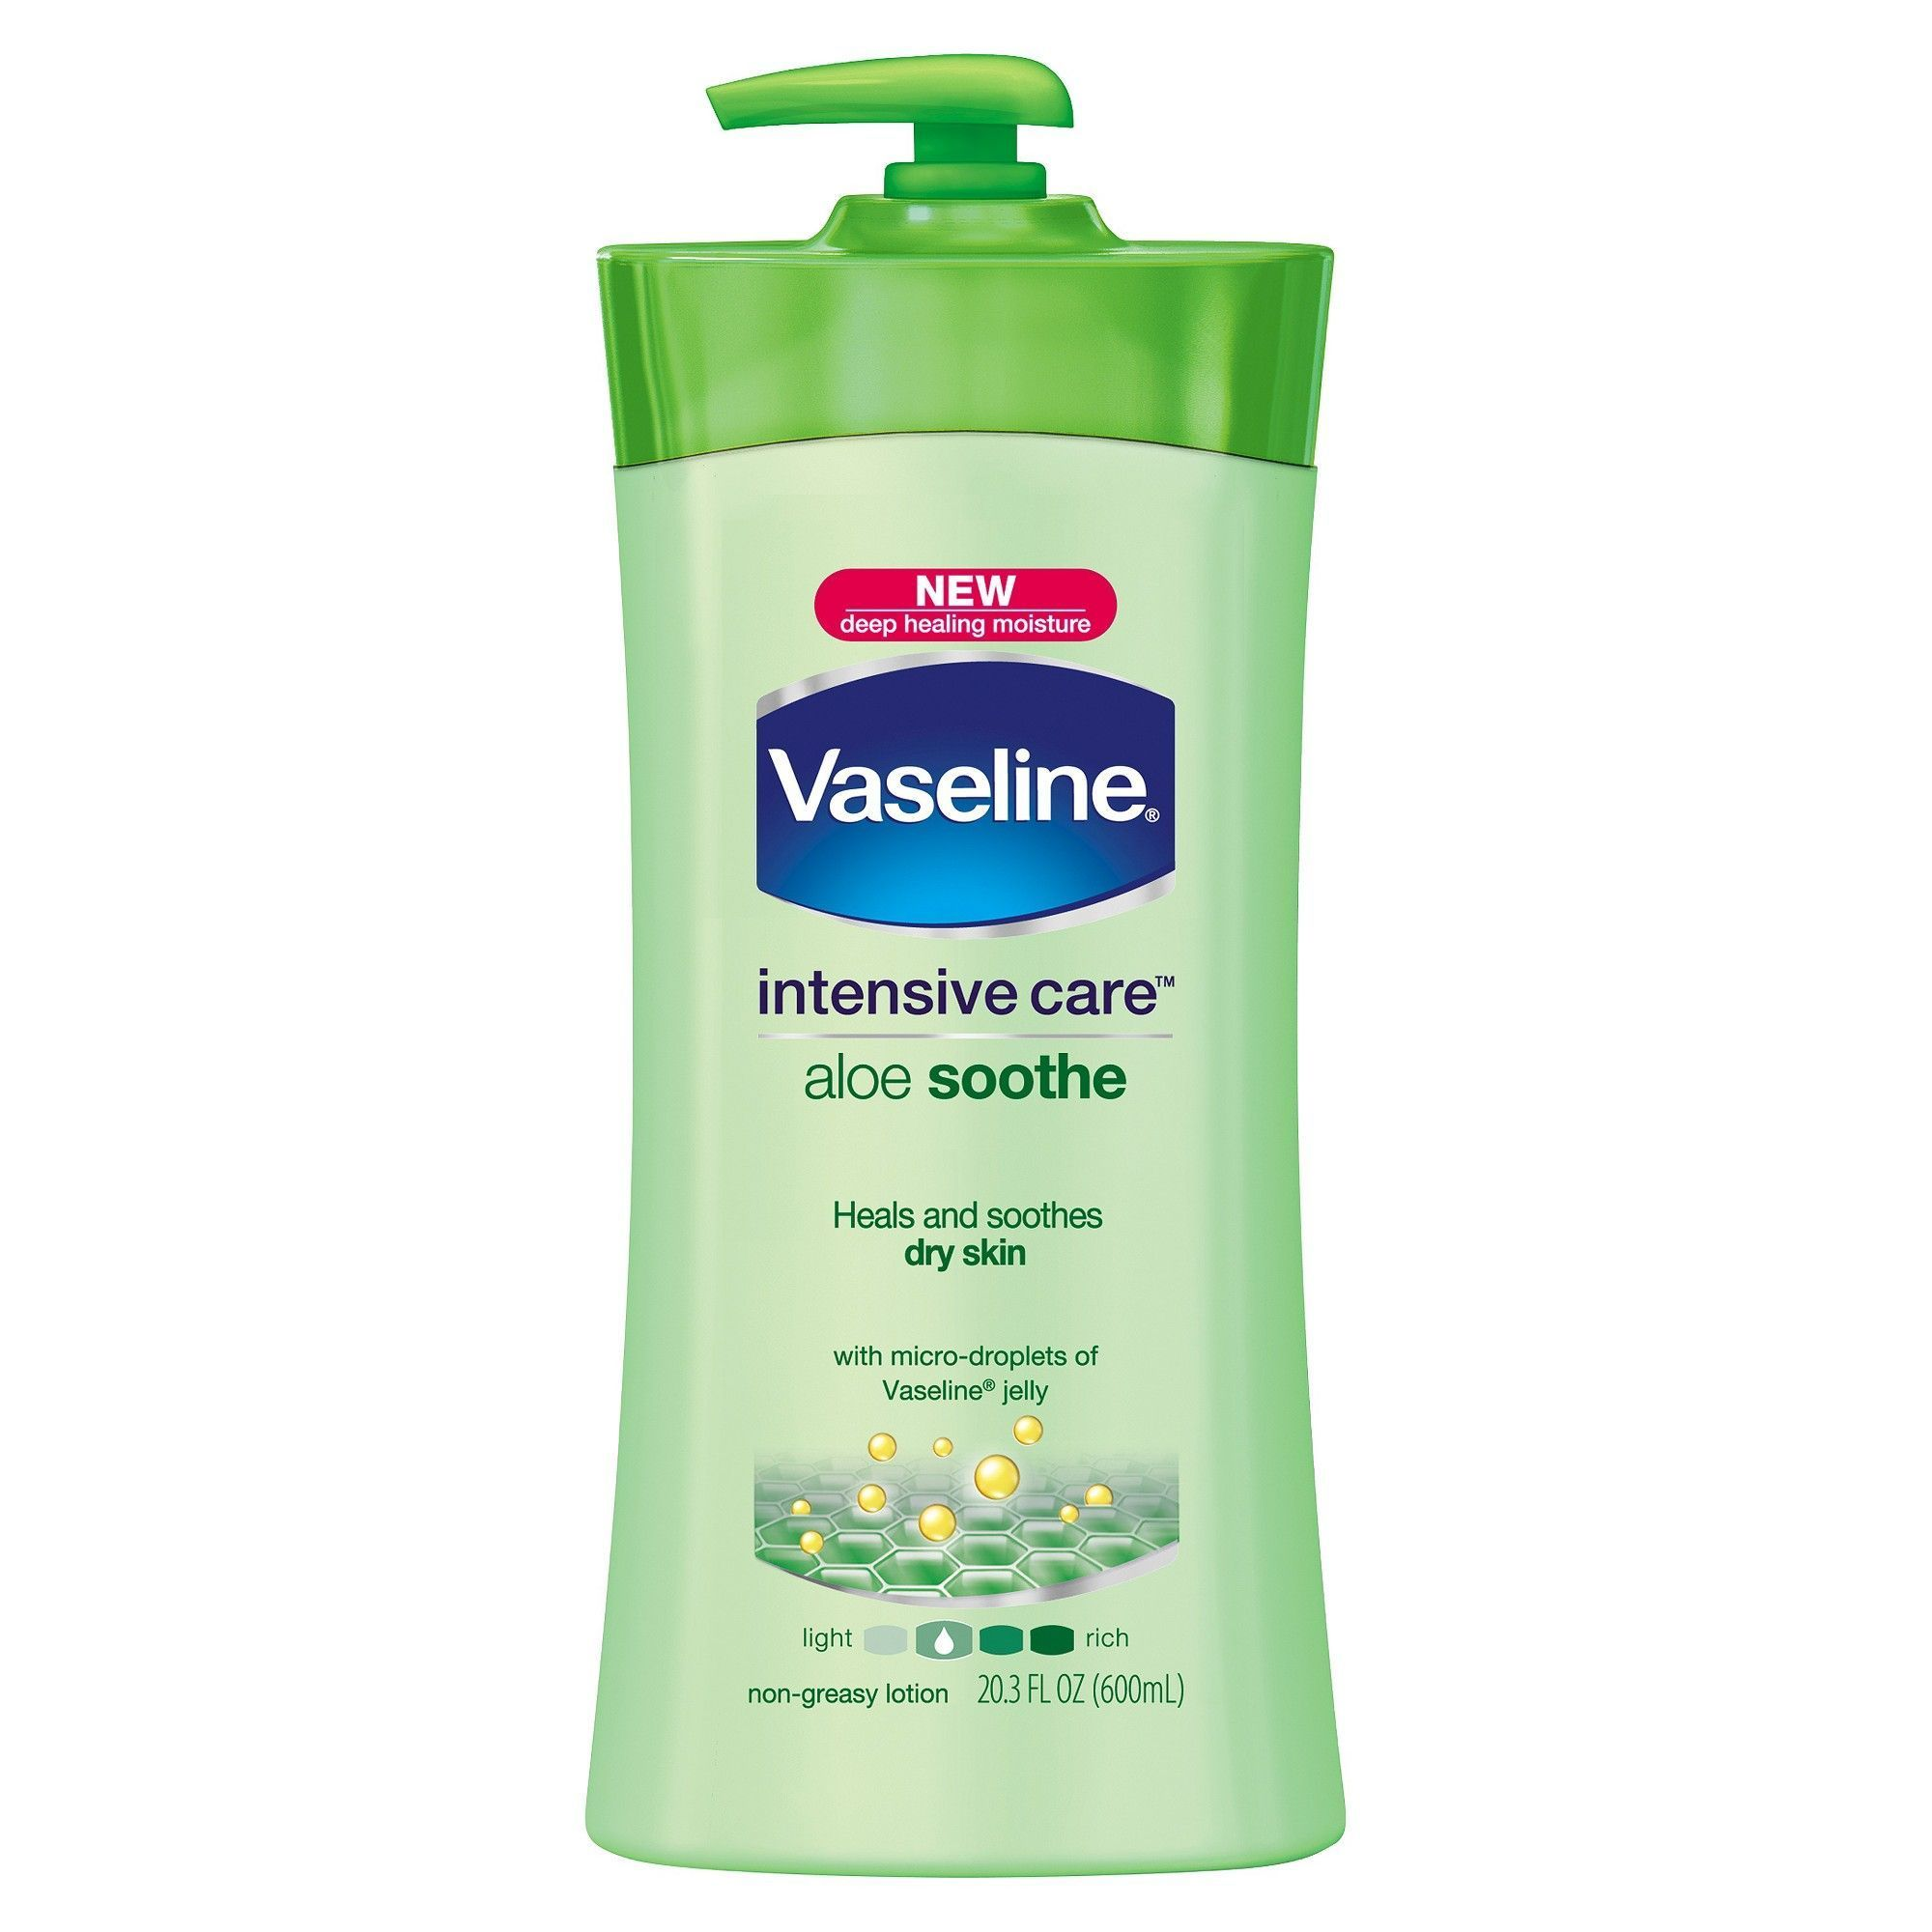 Vaseline Intensive Care Aloe Soothe Lotion 20 3 Oz Beautytrickslifehacks Healing Dry Skin Lotion Vaseline